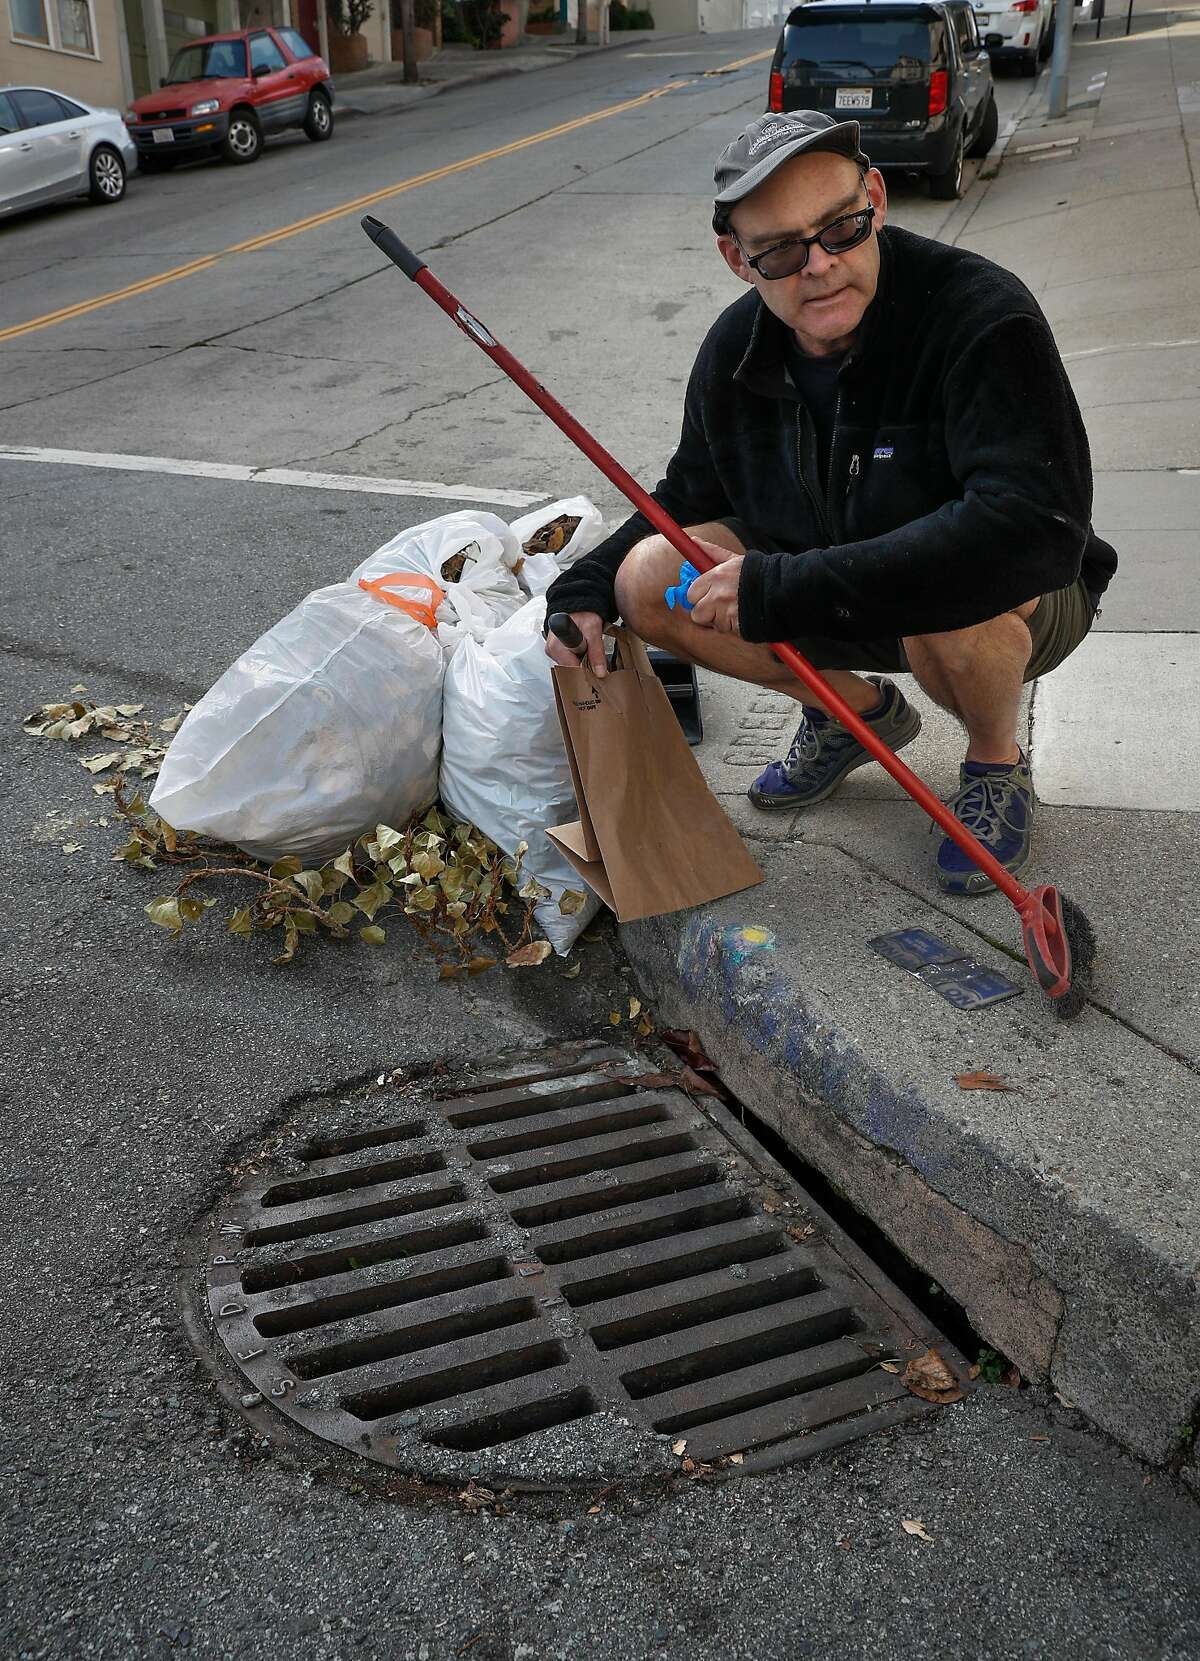 """Mark Cormier at the street drain he keeps clean to prevent clogging that leads to flooded streets near his Telegraph Hill home in San Francisco, Ca. as seen on Fri. December 22, 2017. The SFPUC is pushing to get more folks to """"adopt"""" sewer drains in order to prevent flooding."""